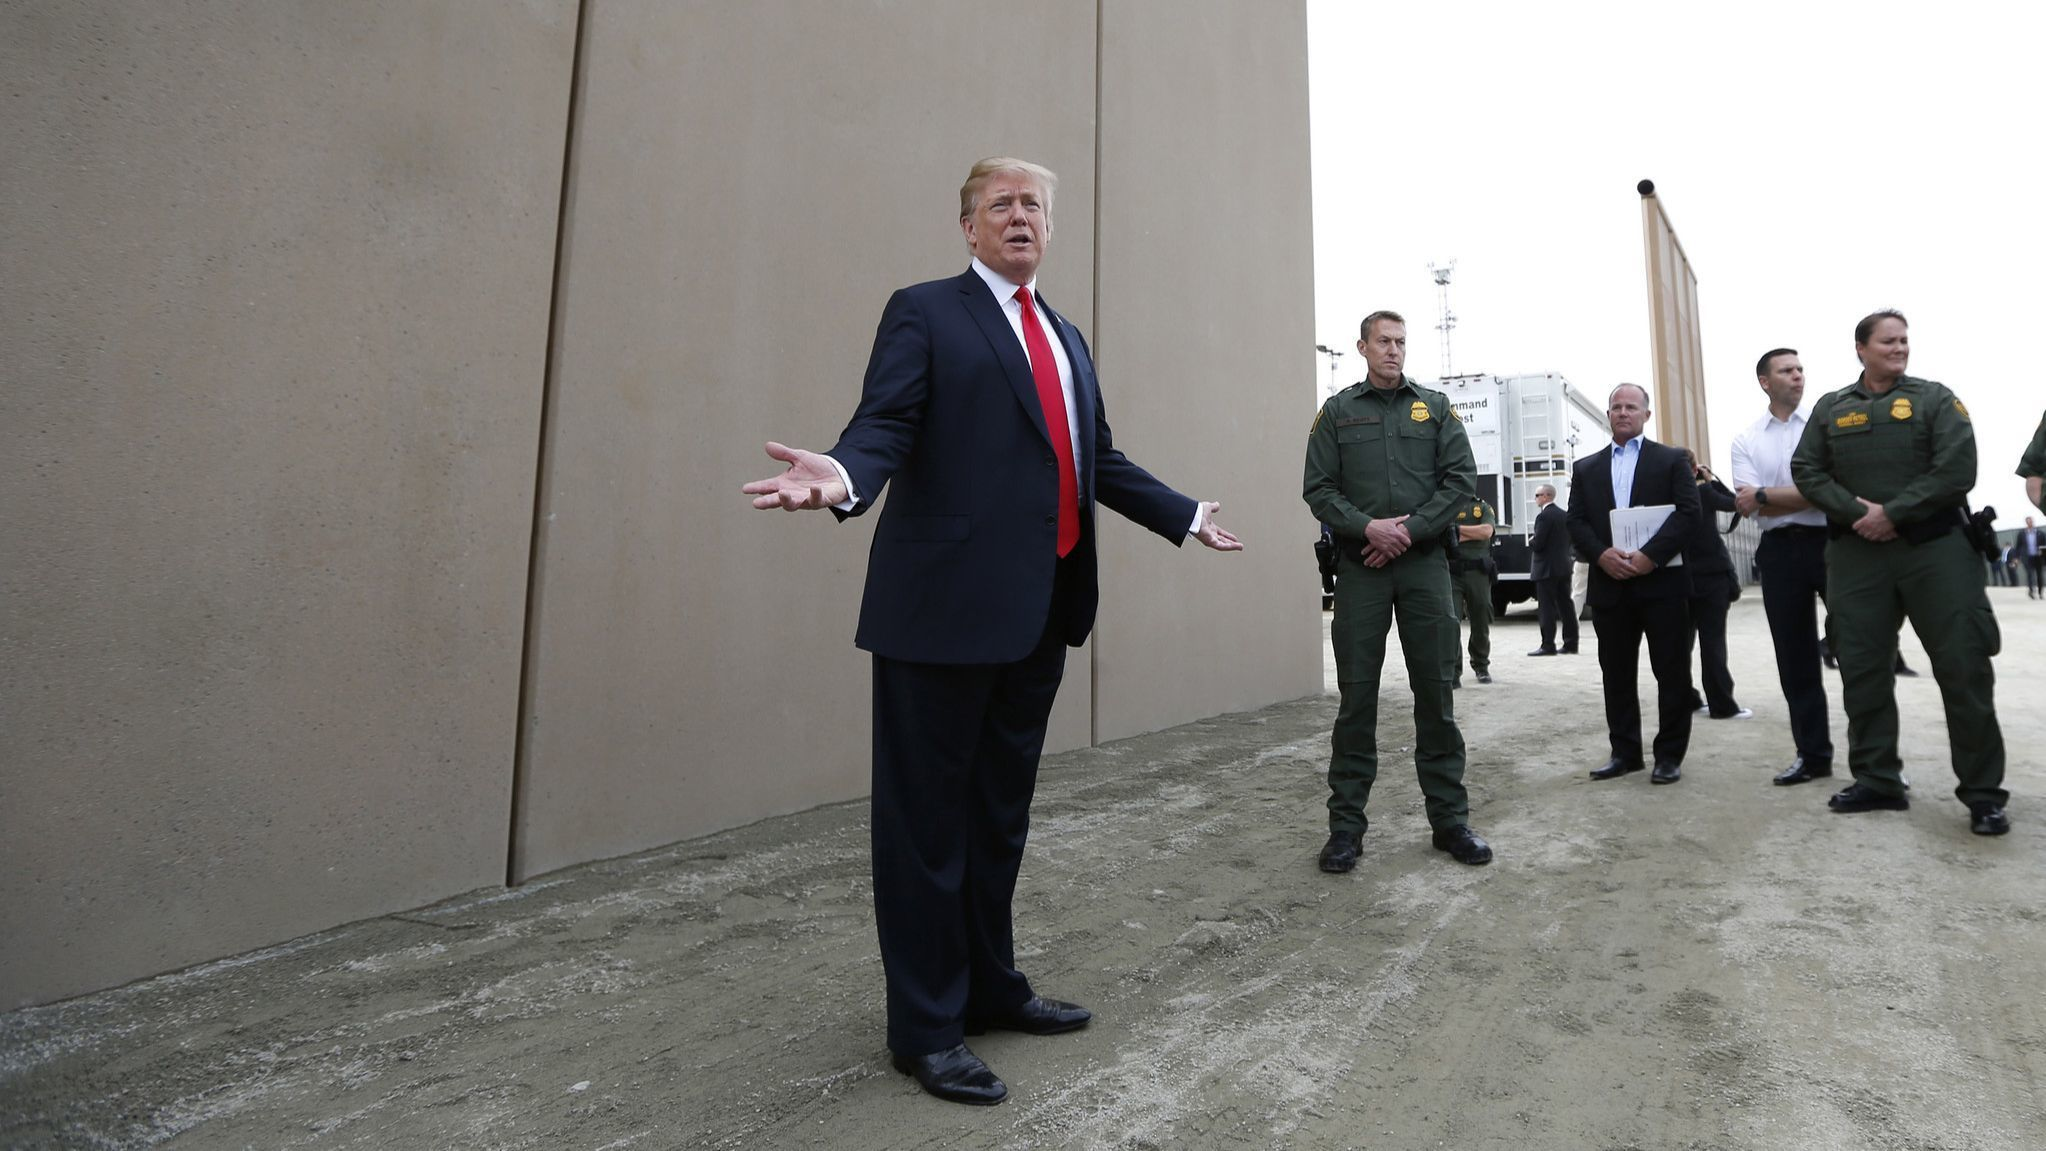 Trump's 'beautiful wall' is a vanity project and nothing more. Democrats should treat it as such